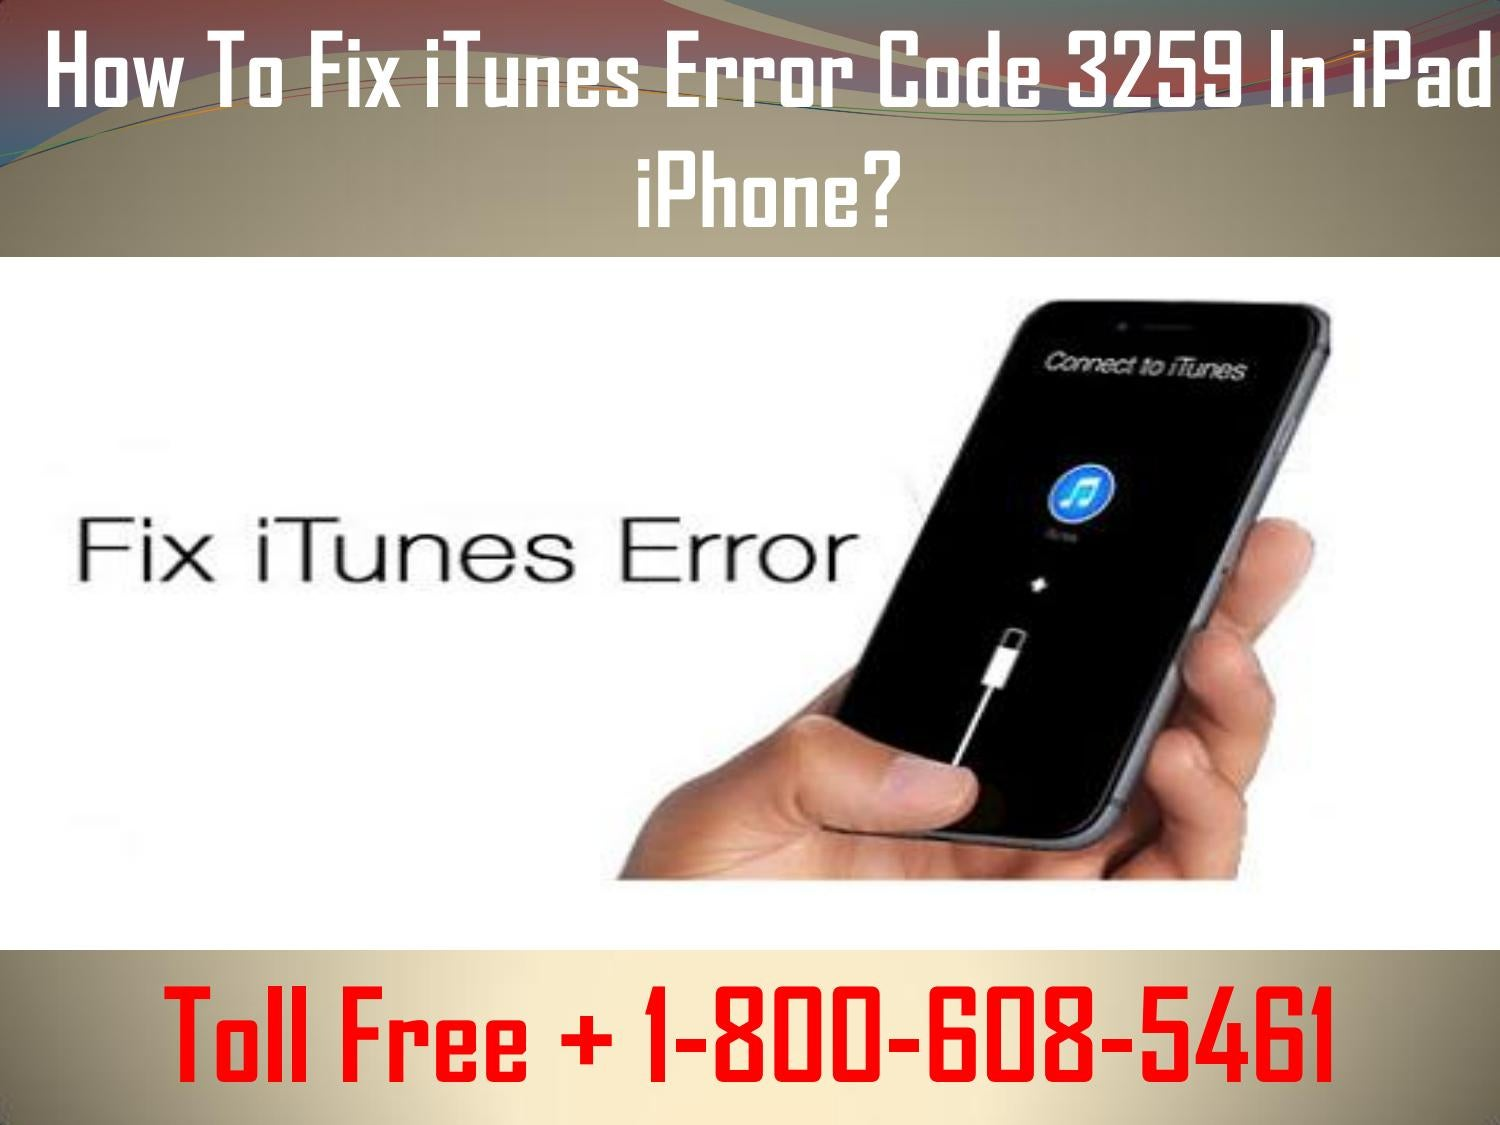 1 800 608 5461 how to fix itunes error code 3259 in ipad iphone by johnny diesel issuu